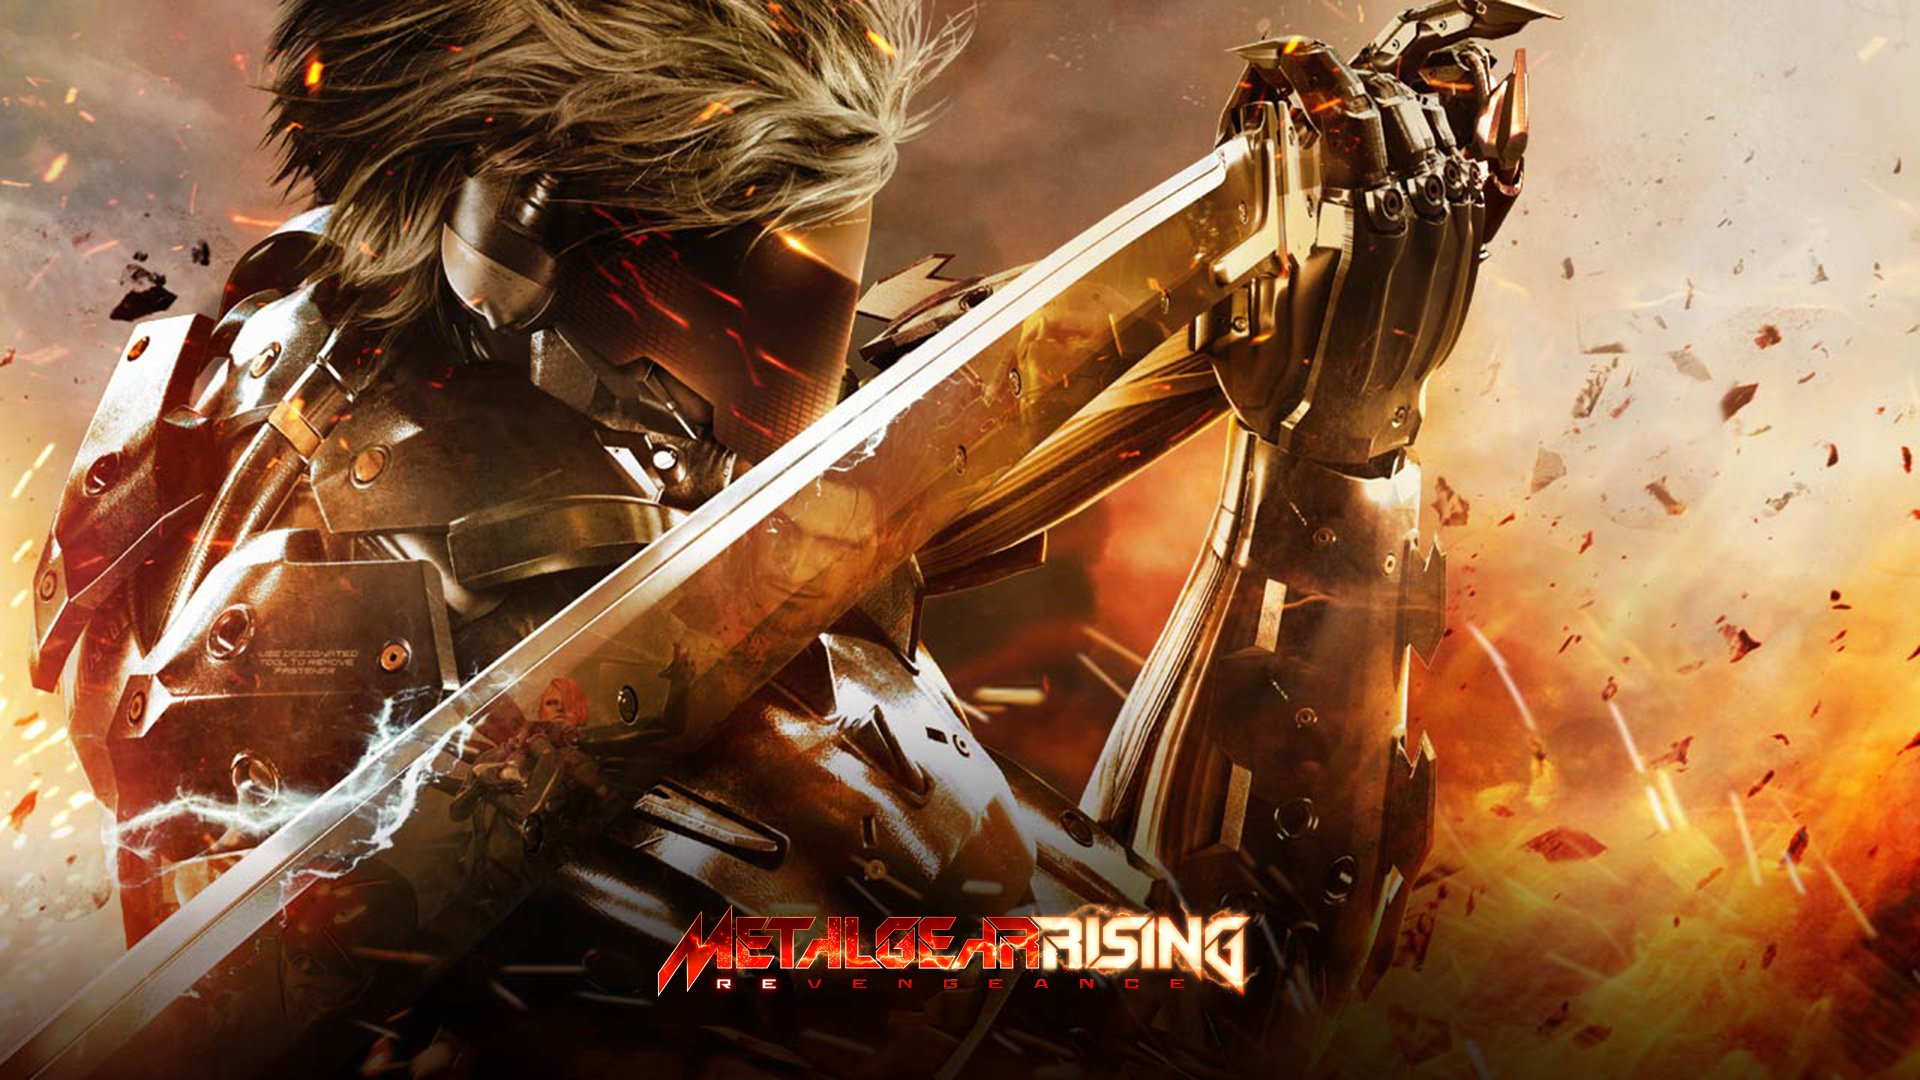 42 Hd Raiden Wallpaper On Wallpapersafari: The 10 Most Amazing Metal Gear Rising HD Wallpapers